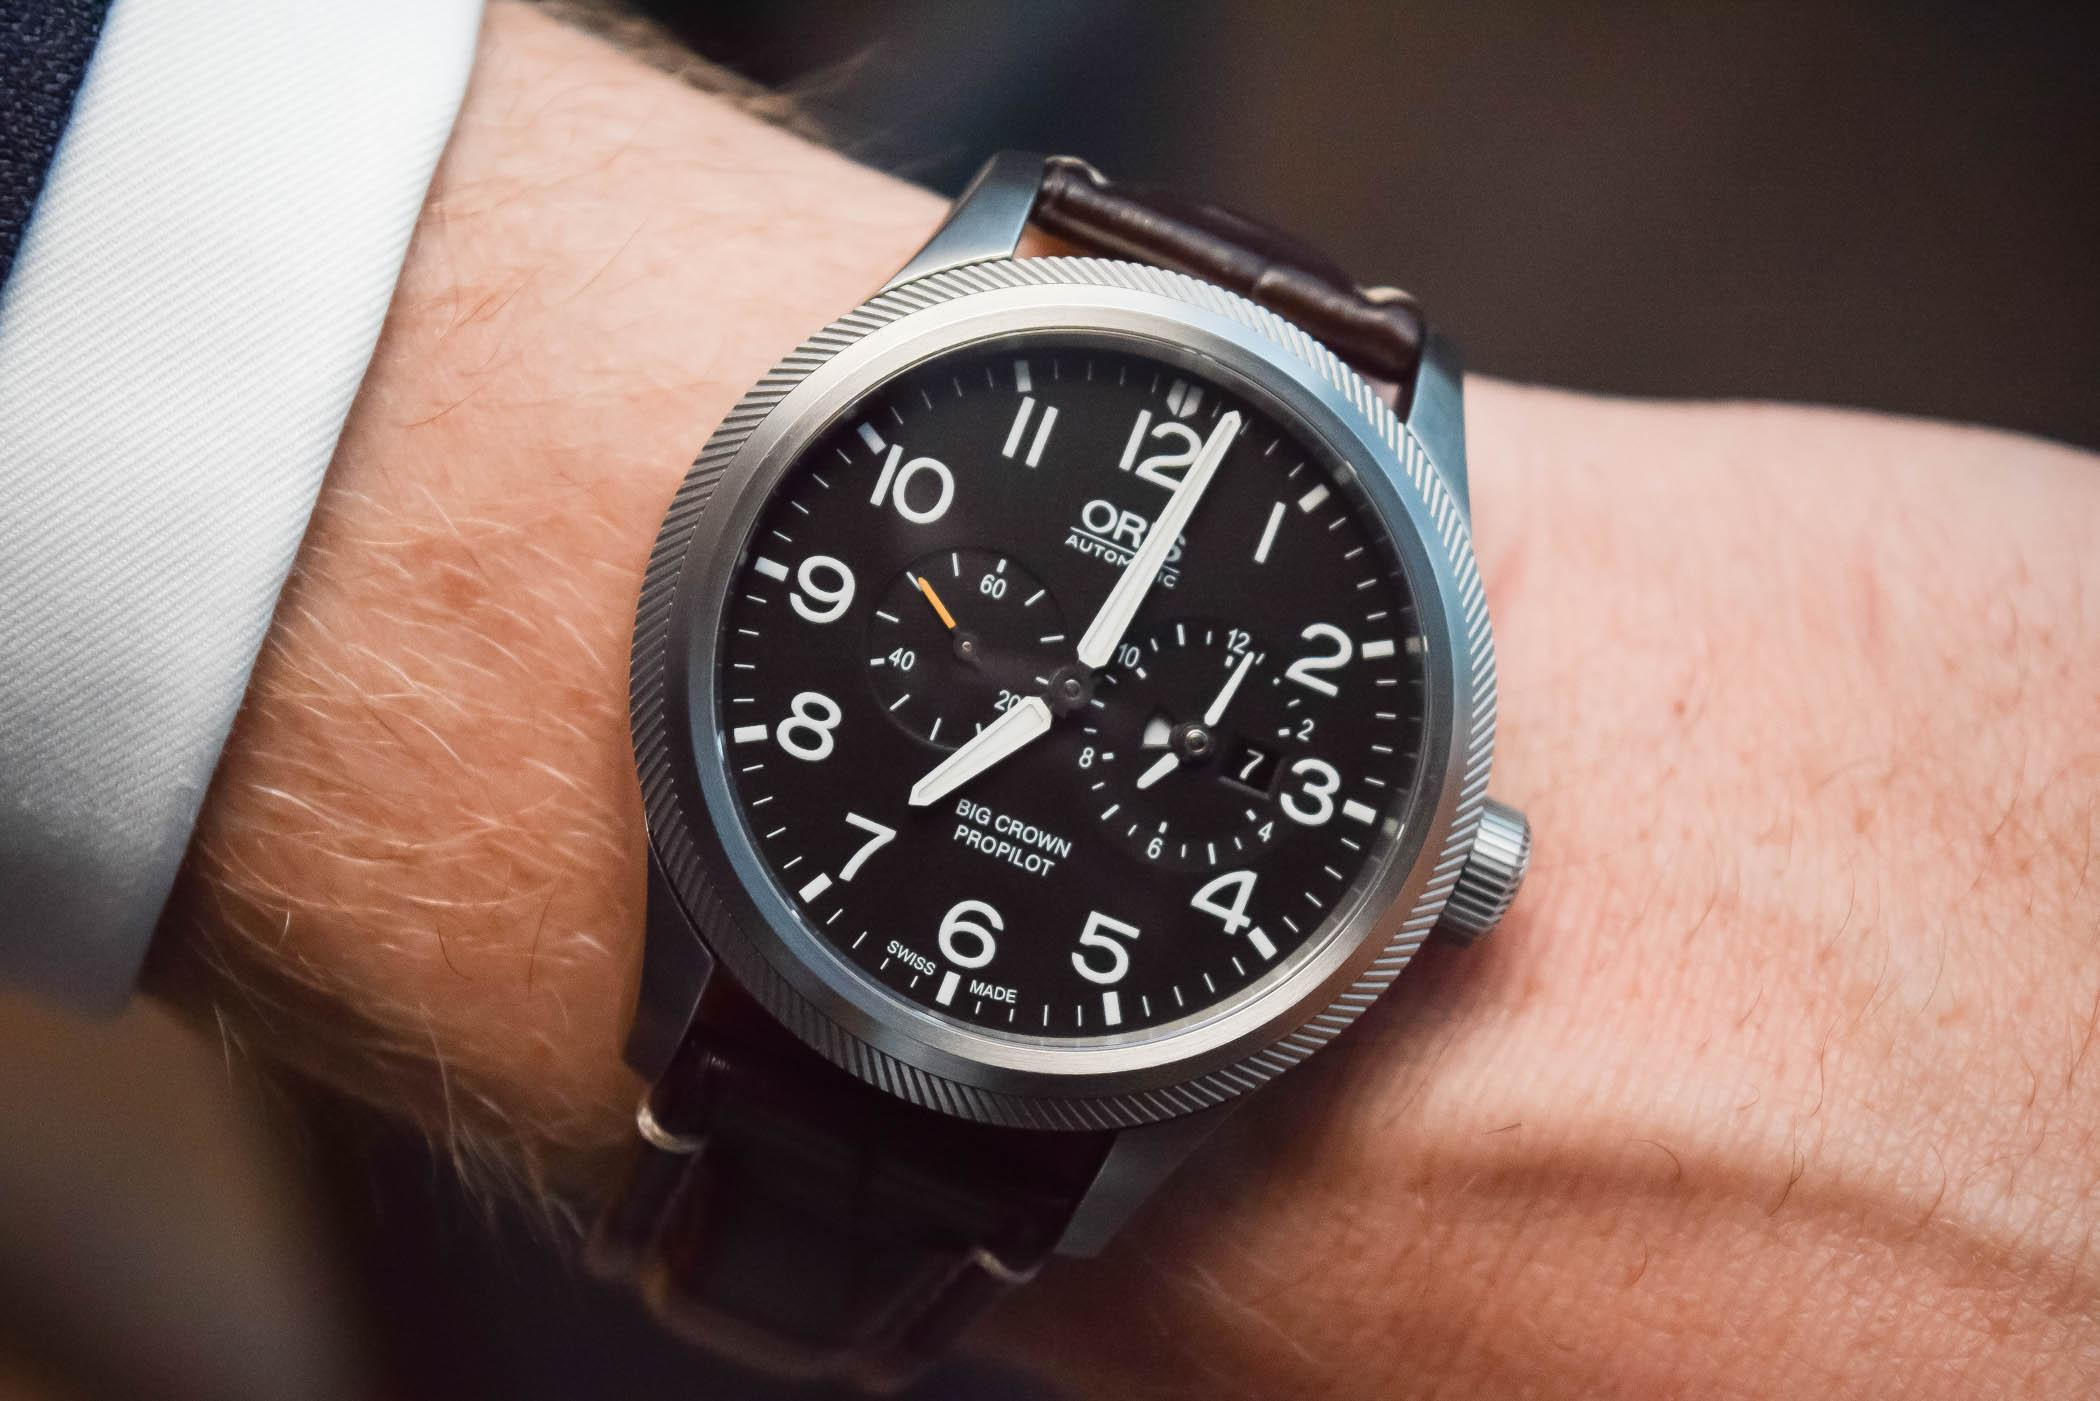 Oris Big Crown ProPilot Worldtimer, With Clever Bezel-Actuated Dual-Time Function (Hands-On with Price)